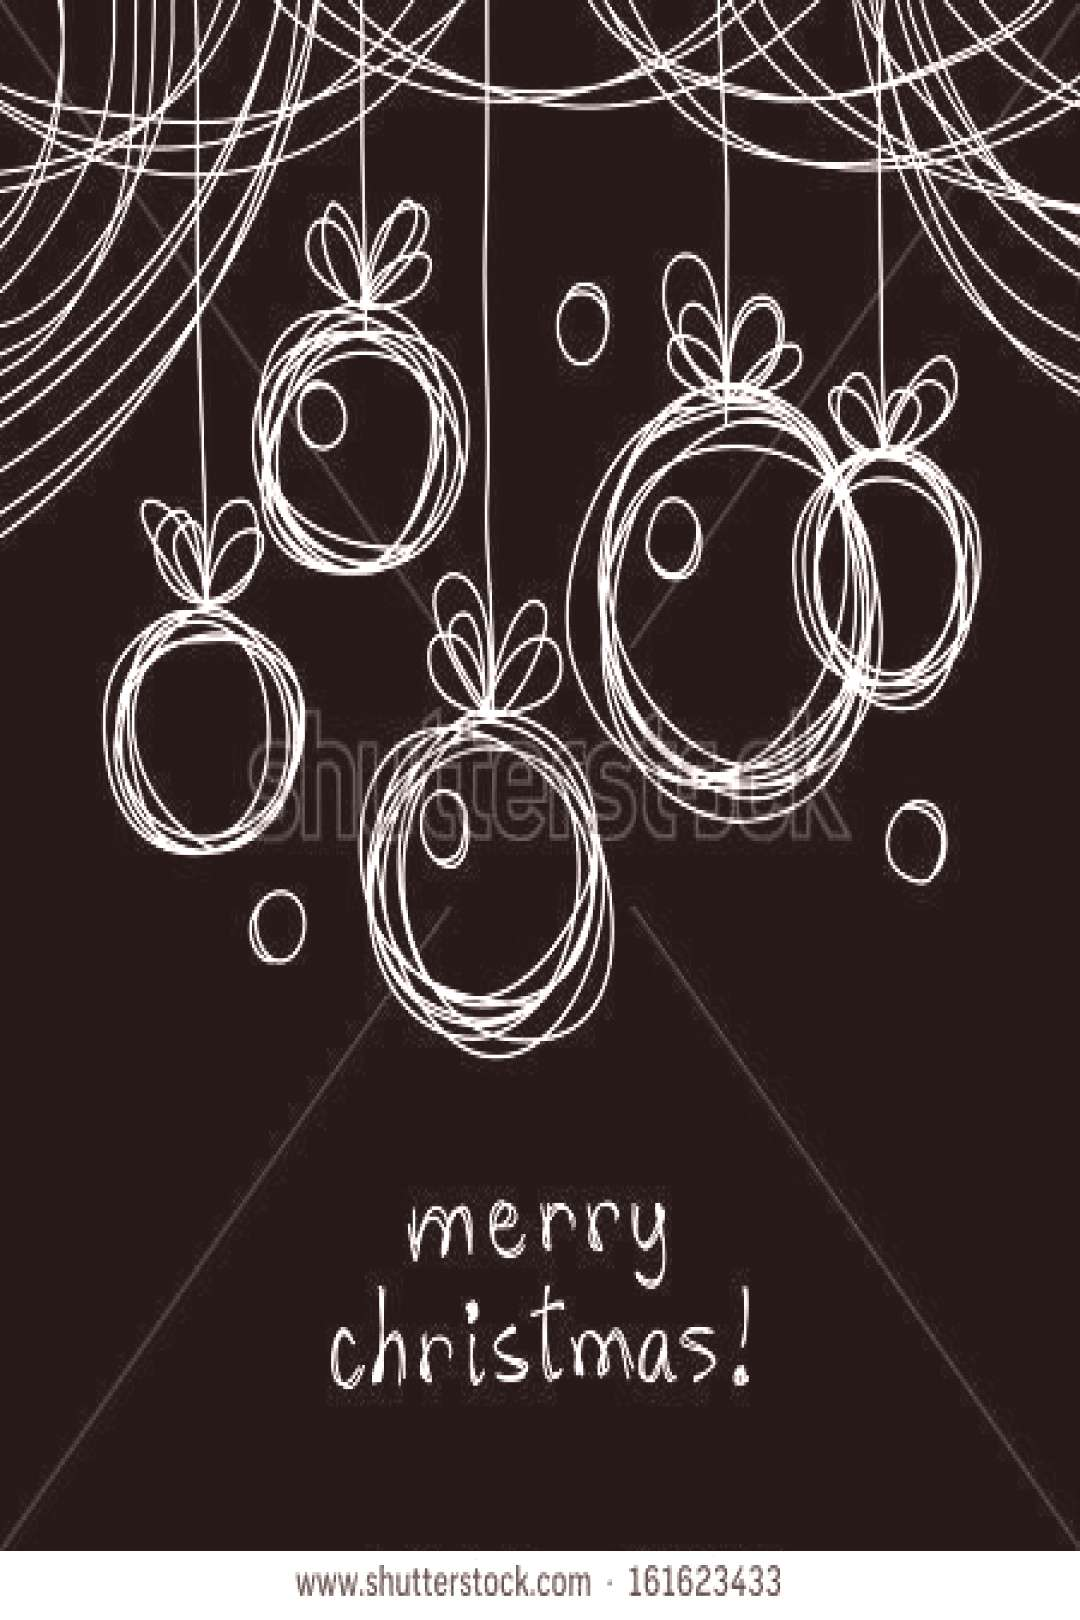 Vector Christmas doodle background. Christmas balls in hand drawn childish sketch style. Invitation